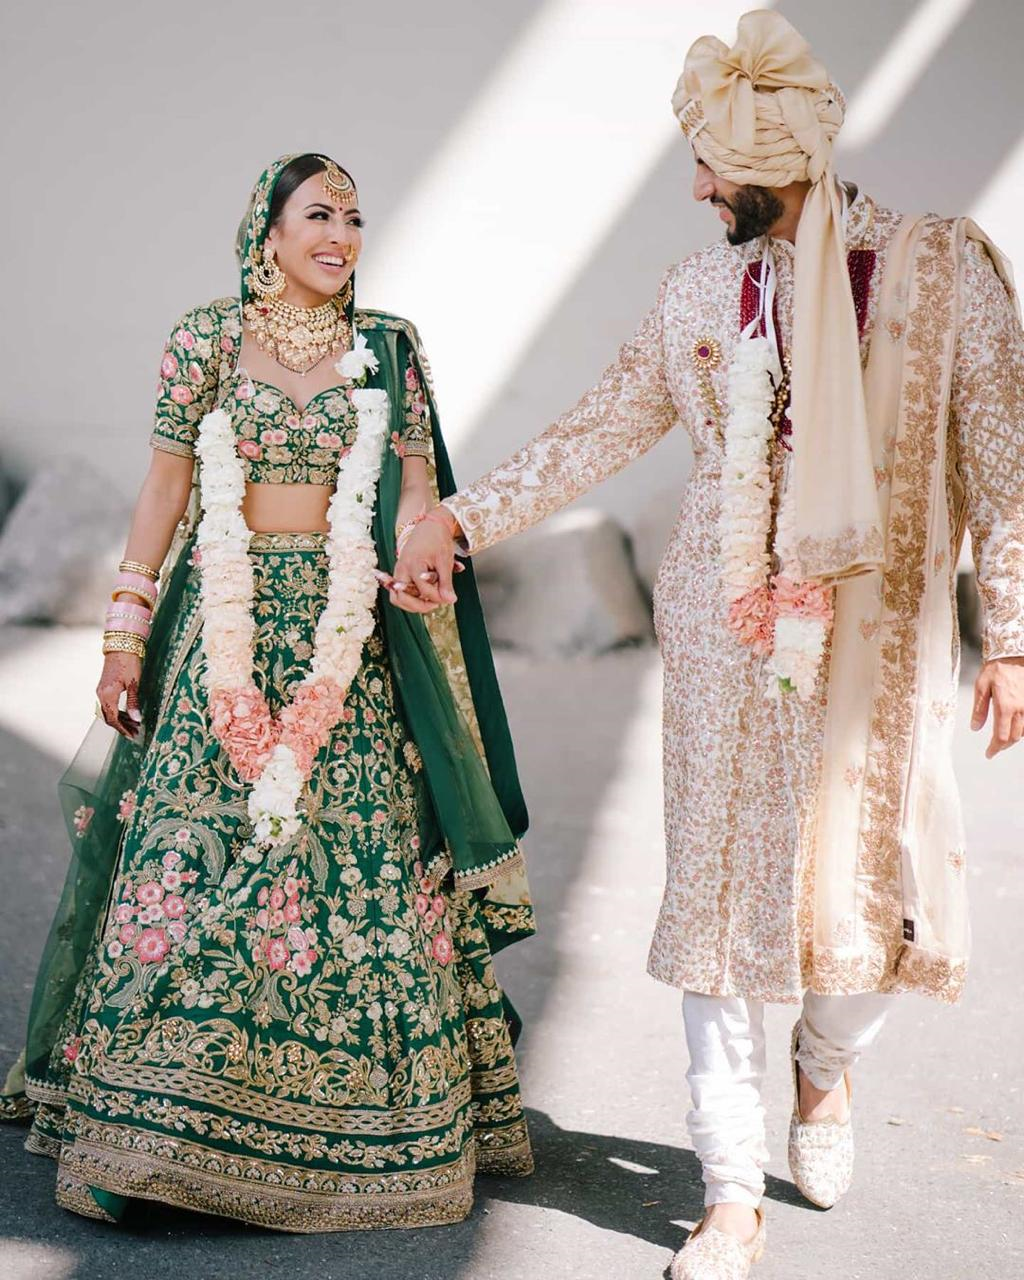 A Surreal Wedding With Lots Of Greenery And Colours In 2020 Wedding Outfits For Groom Indian Wedding Outfits Groom Dress Men